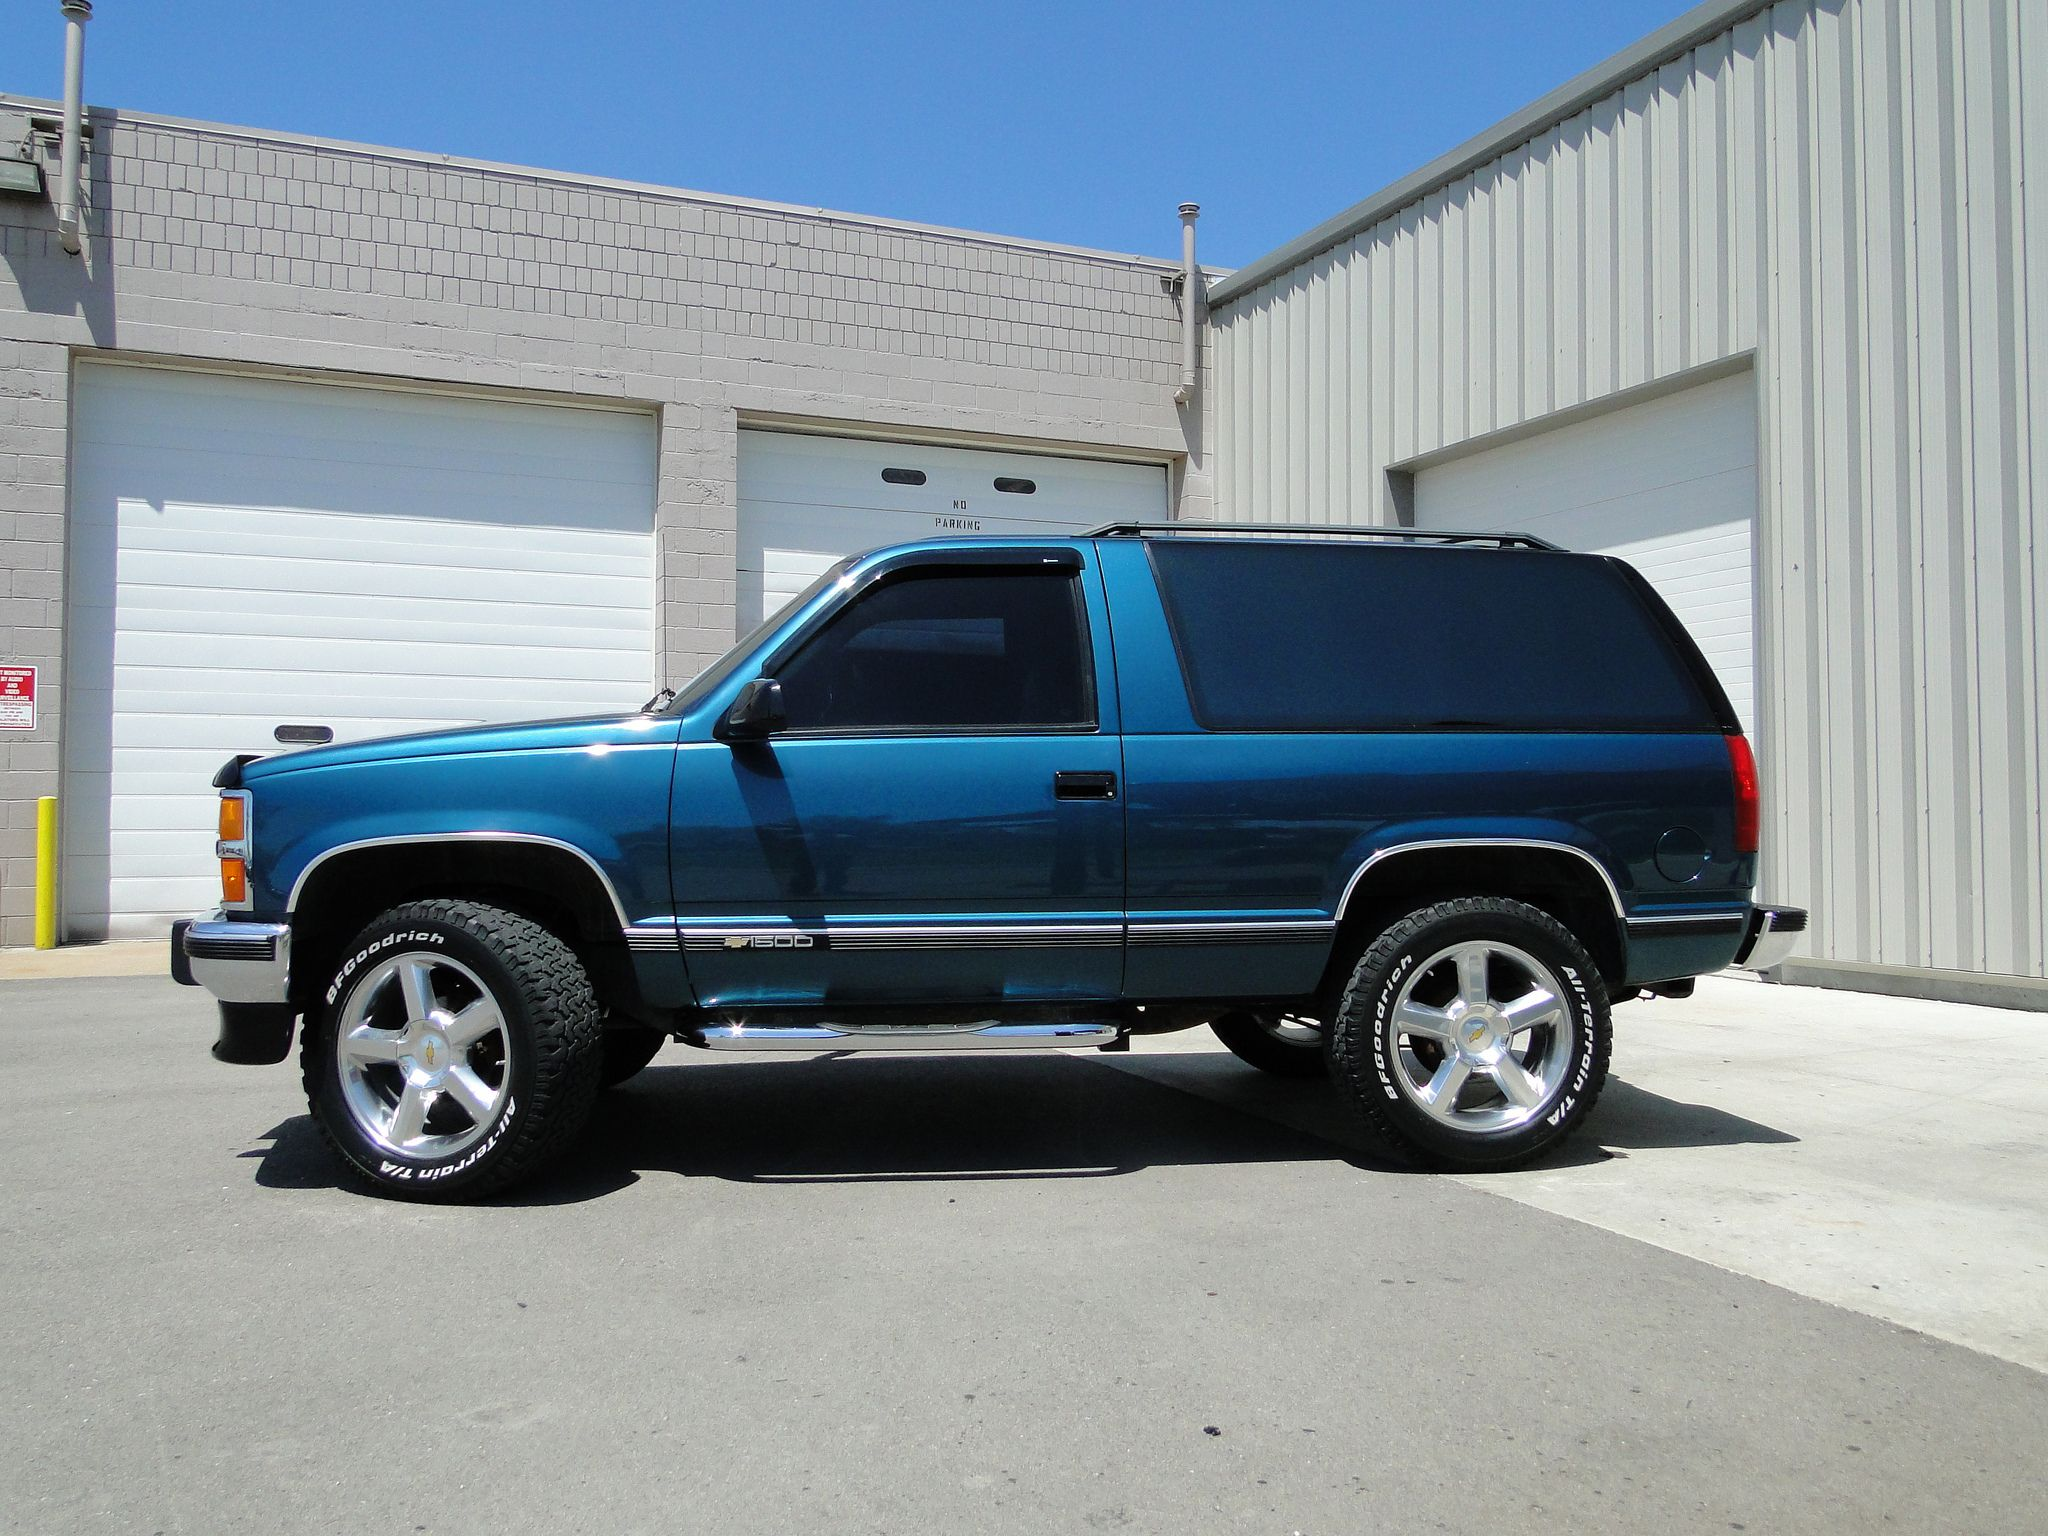 1994 Chevy Blazer 2 Door 4x4 Chevy Trucks Chevy Tahoe Chevy S10